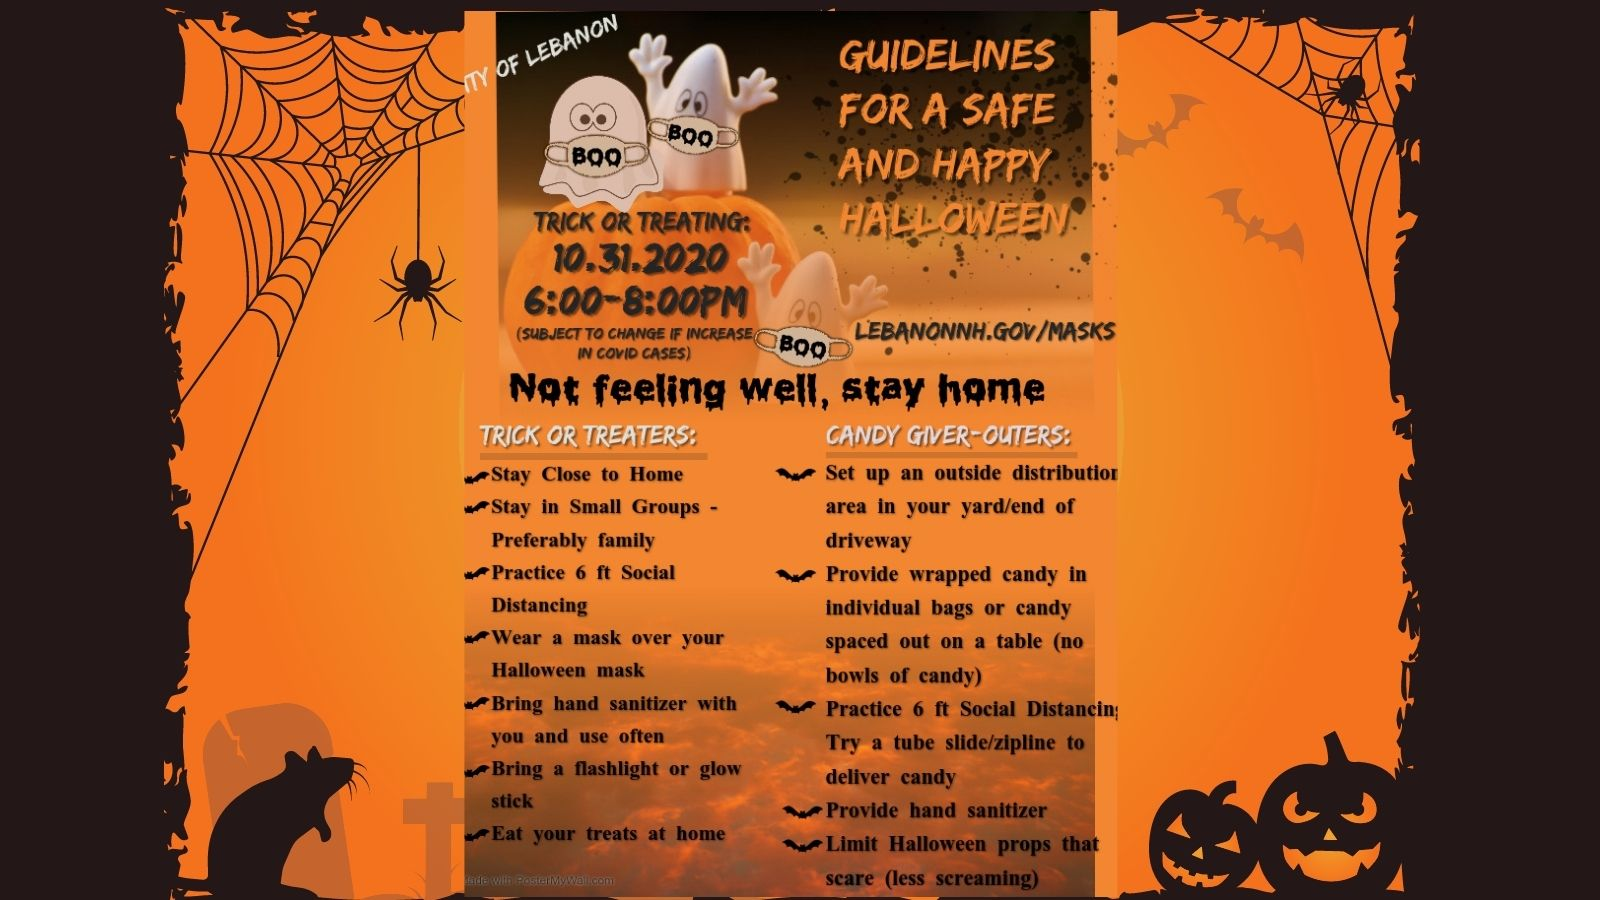 Halloween guidelines poster image